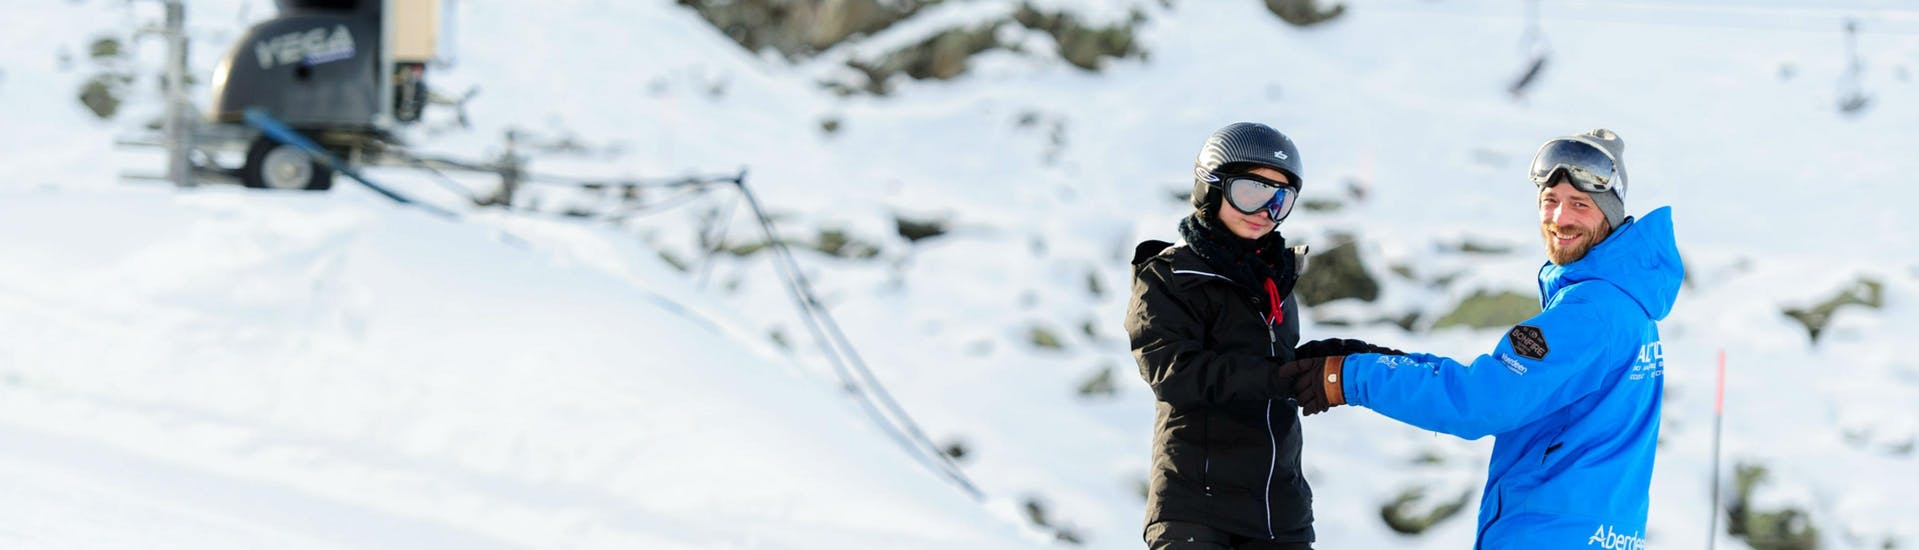 Private Snowboarding Lessons for All Levels in Verbier with Altitude Ski School Verbier & Gstaad - Hero image